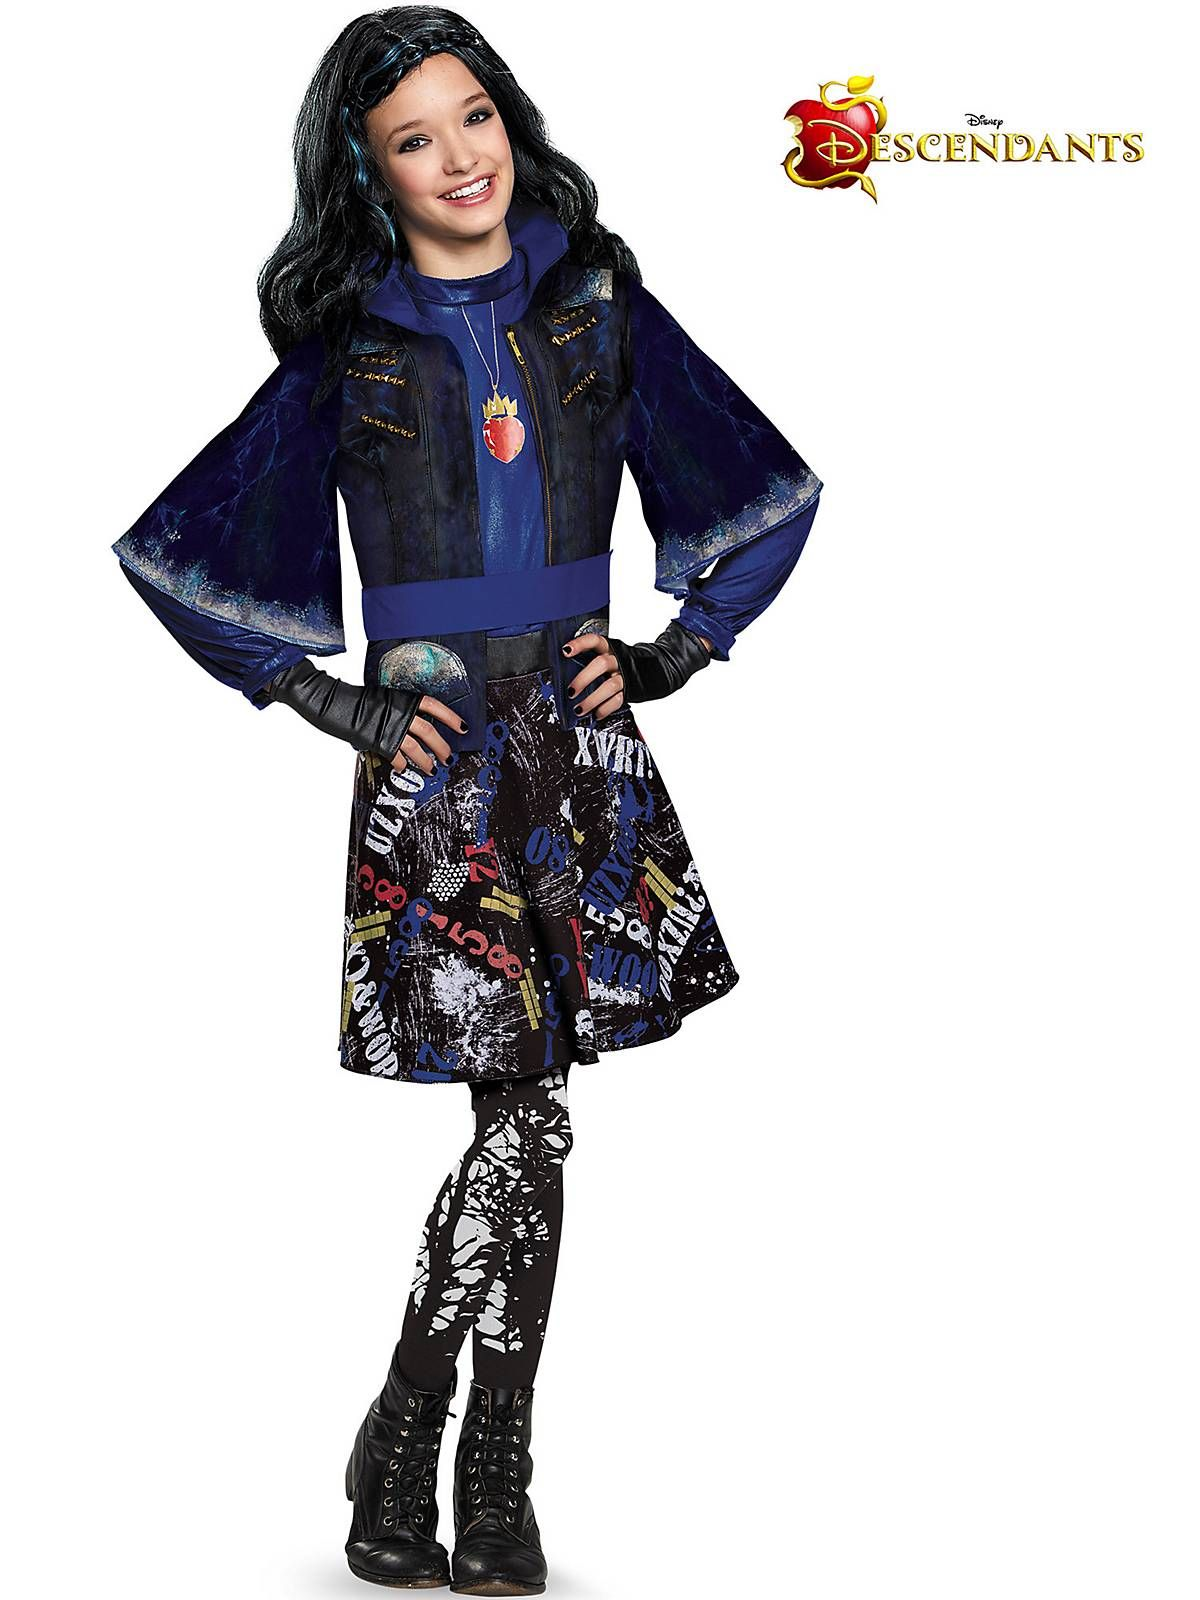 Girls Descendants Evie Isle Of The Lost Deluxe Costume  Wholesale